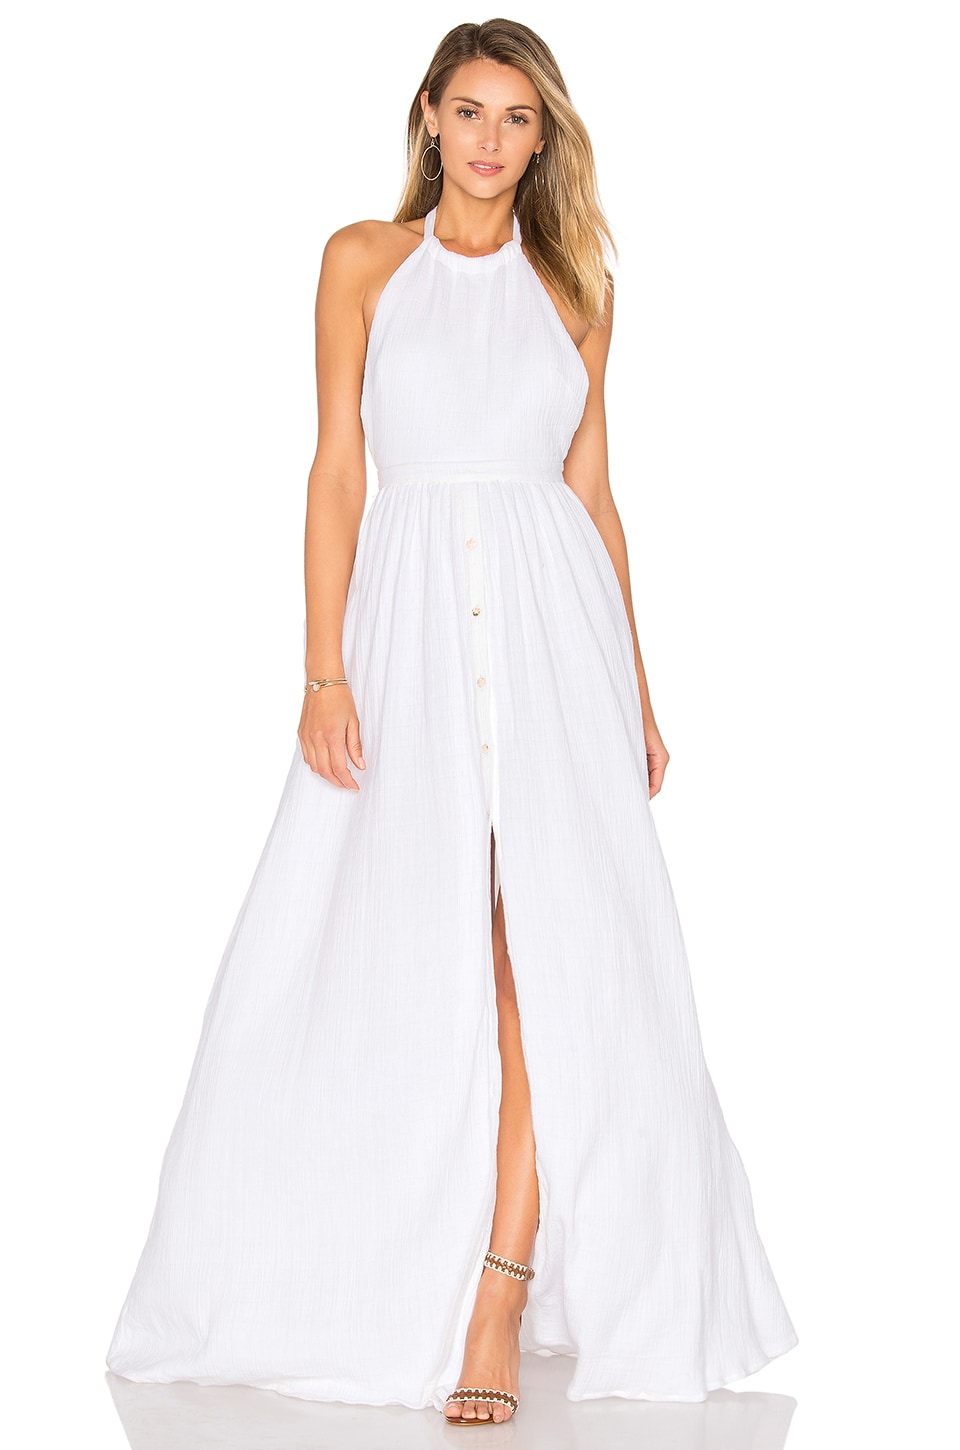 Mara Hoffman Organic Cotton Backless Dress in White